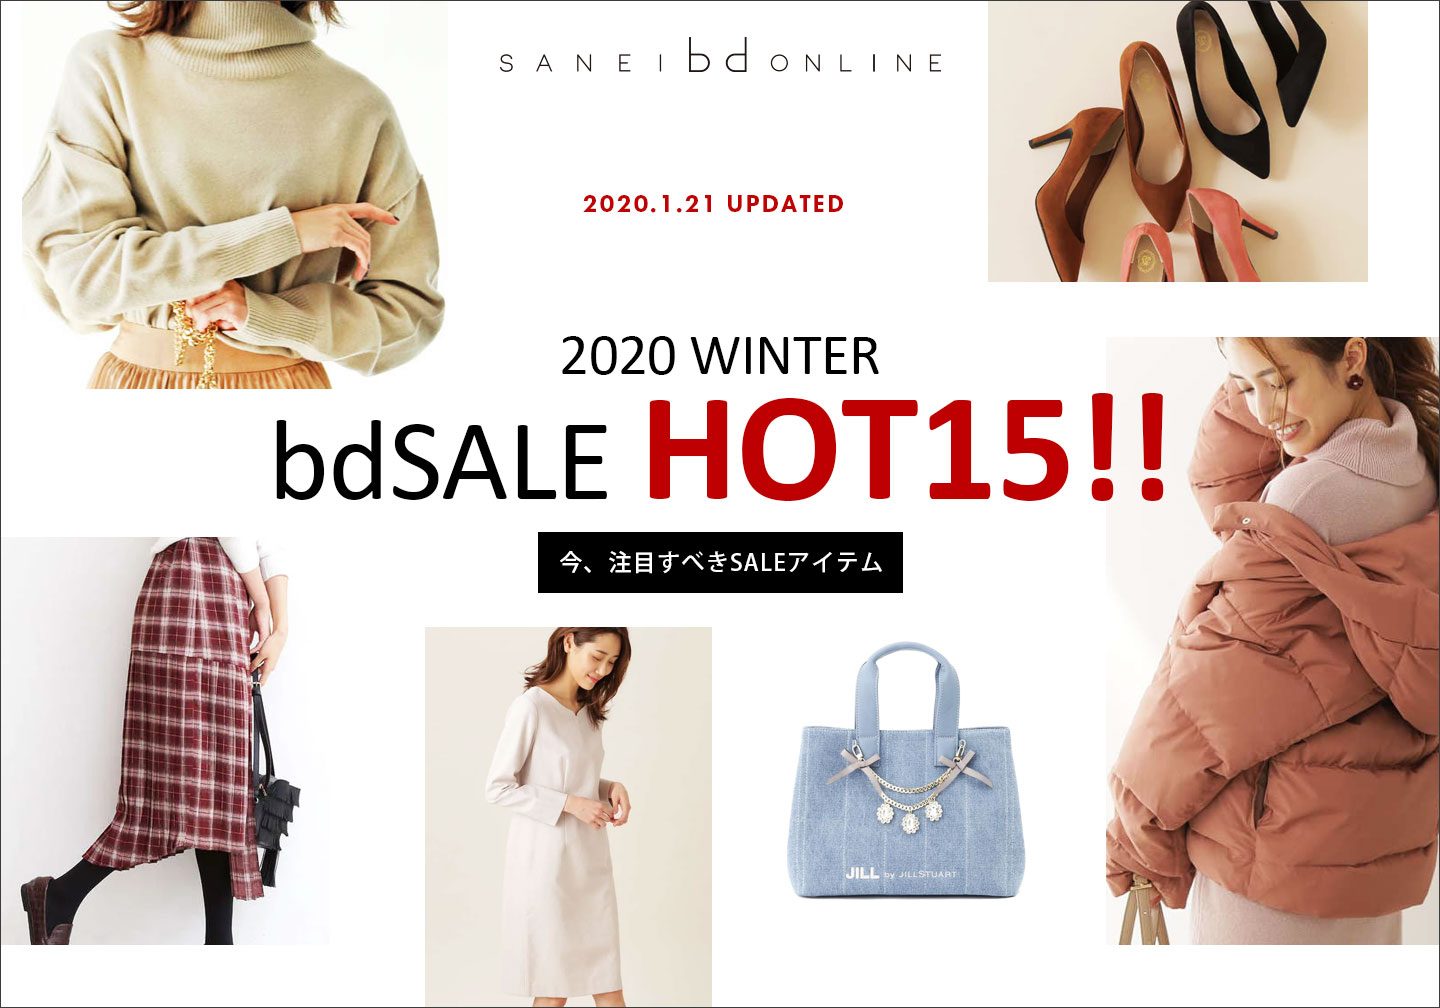 2020 WINTER bdSALE HOT15!!